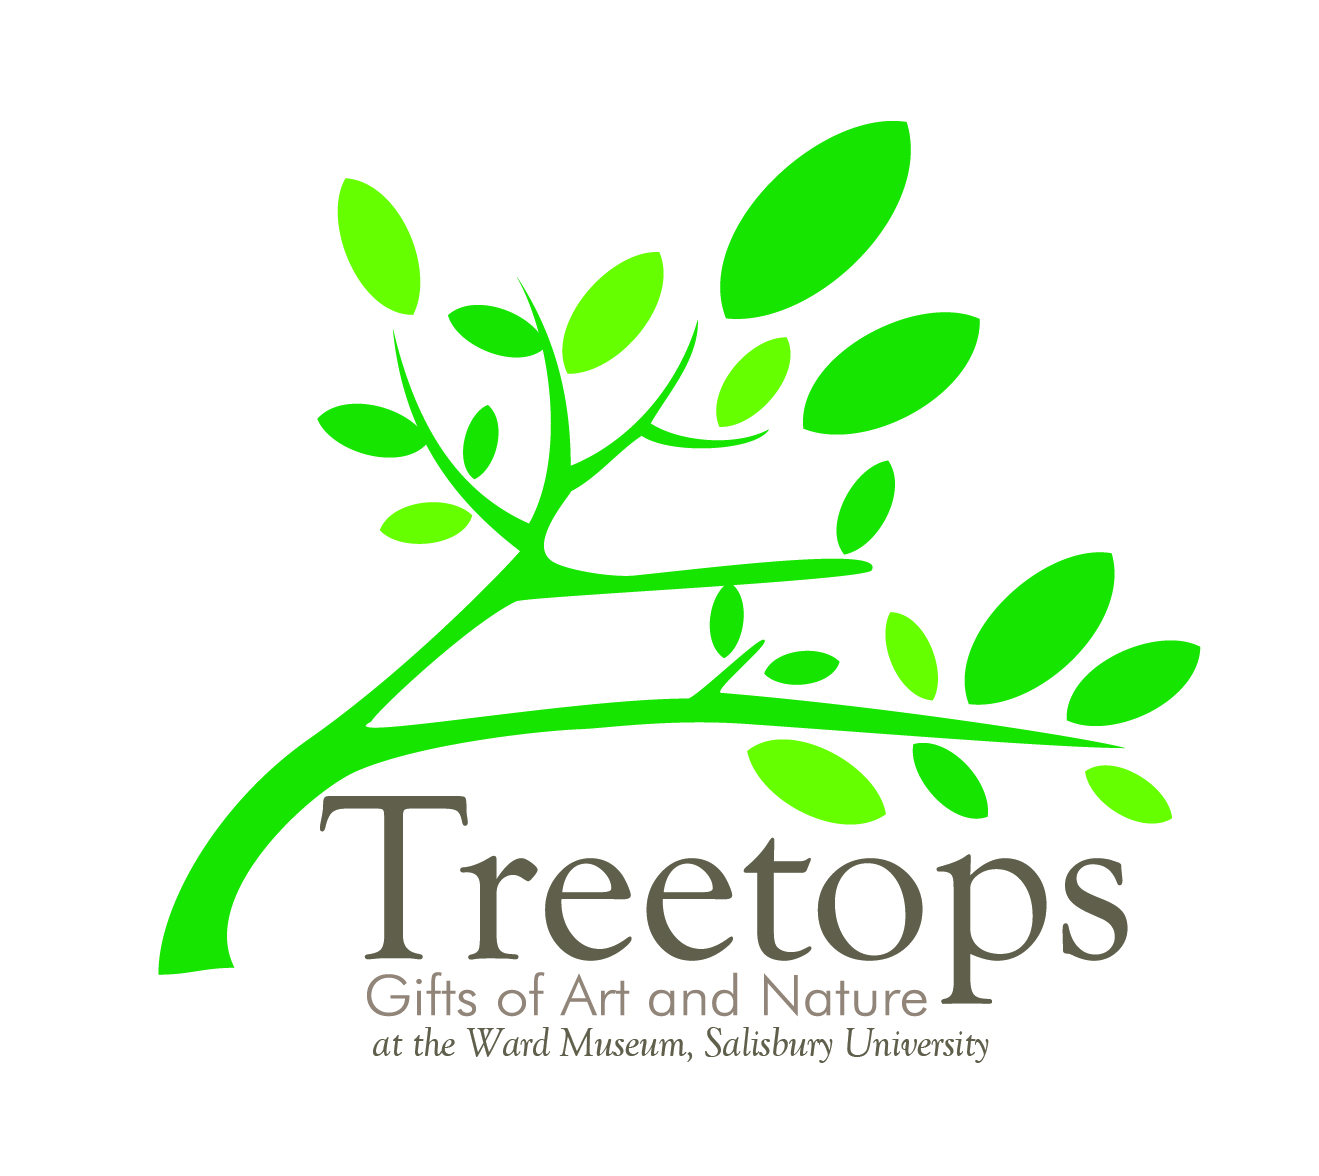 Treetops Gifts of Art and Nature at the Ward Museum, Salisbury University